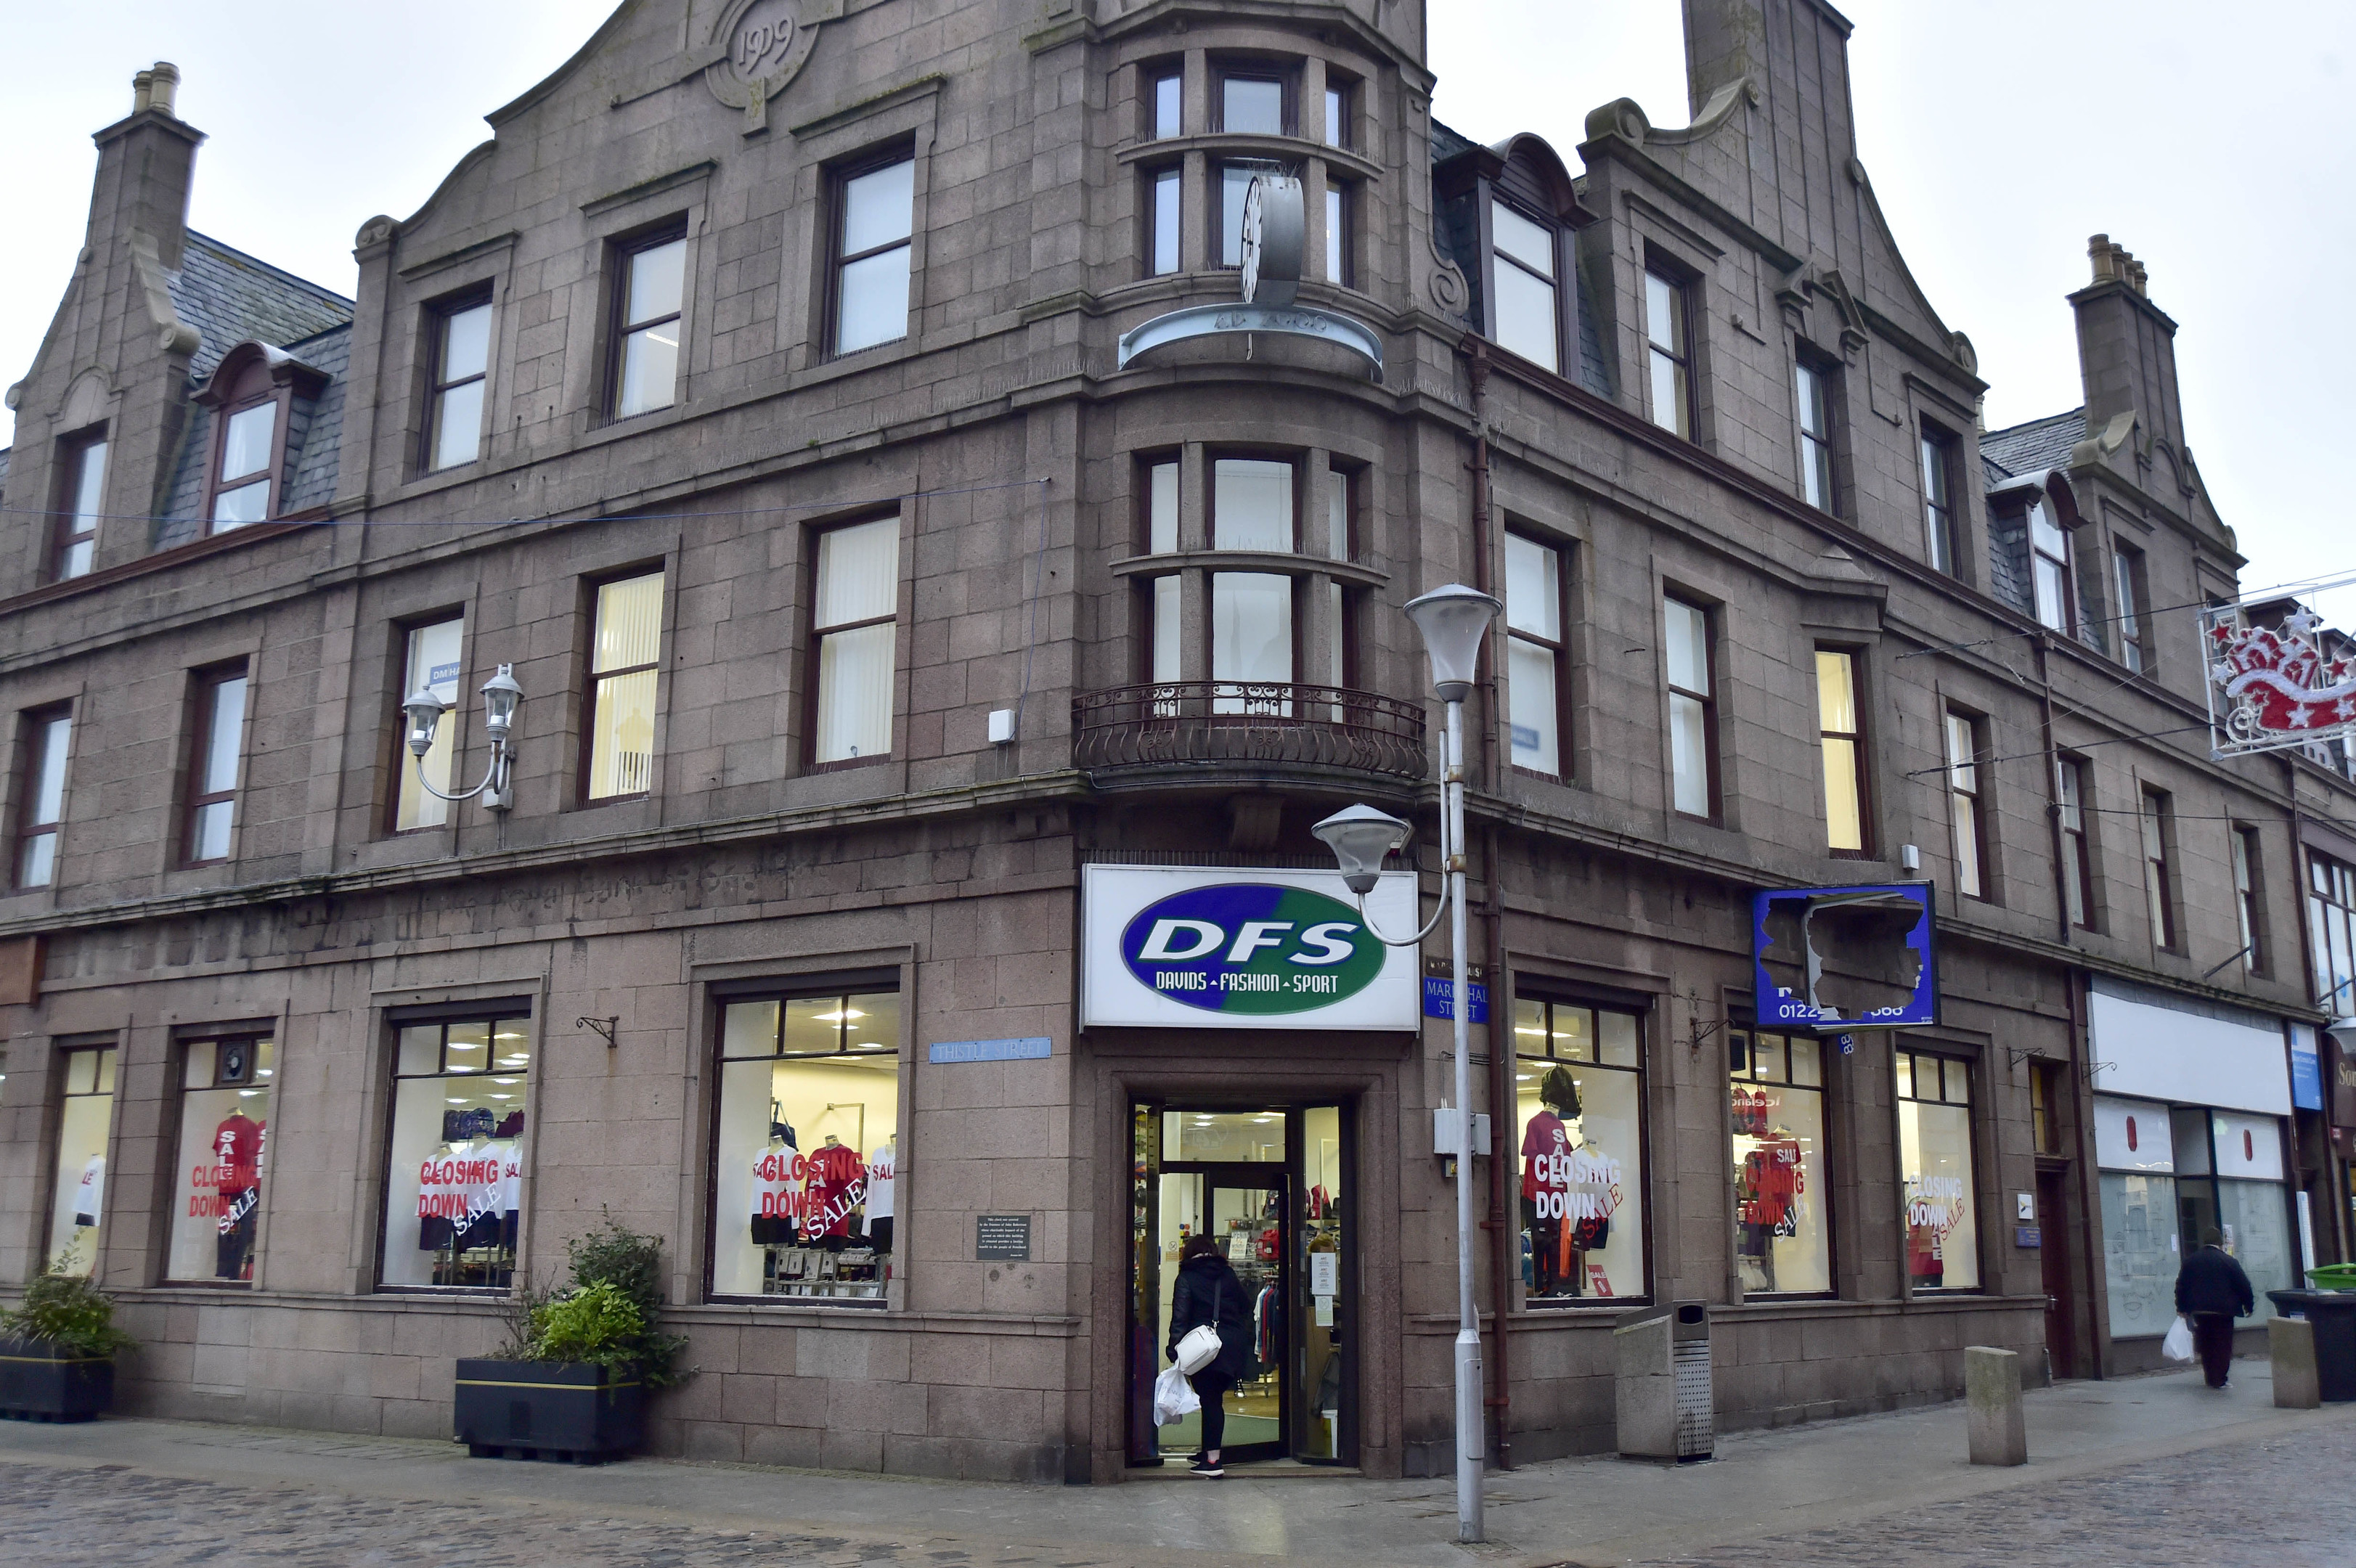 DFS SPORTS IN PETERHEAD TOWN CENTRE IS CLOSING DOWN.